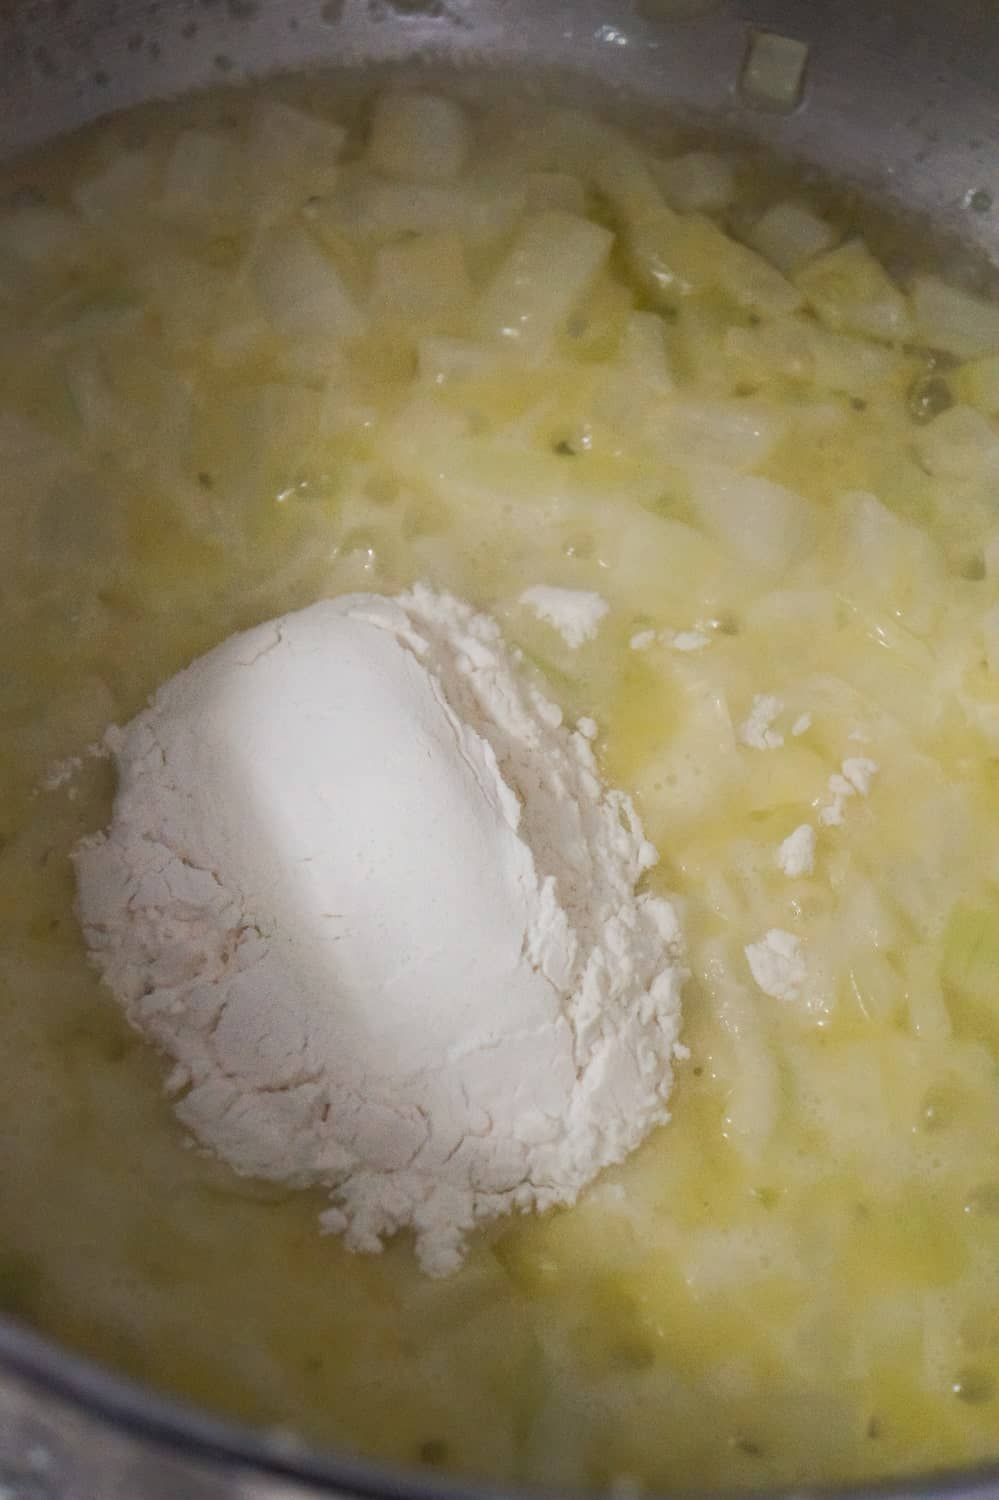 flour added to diced onions and butter in soup pot